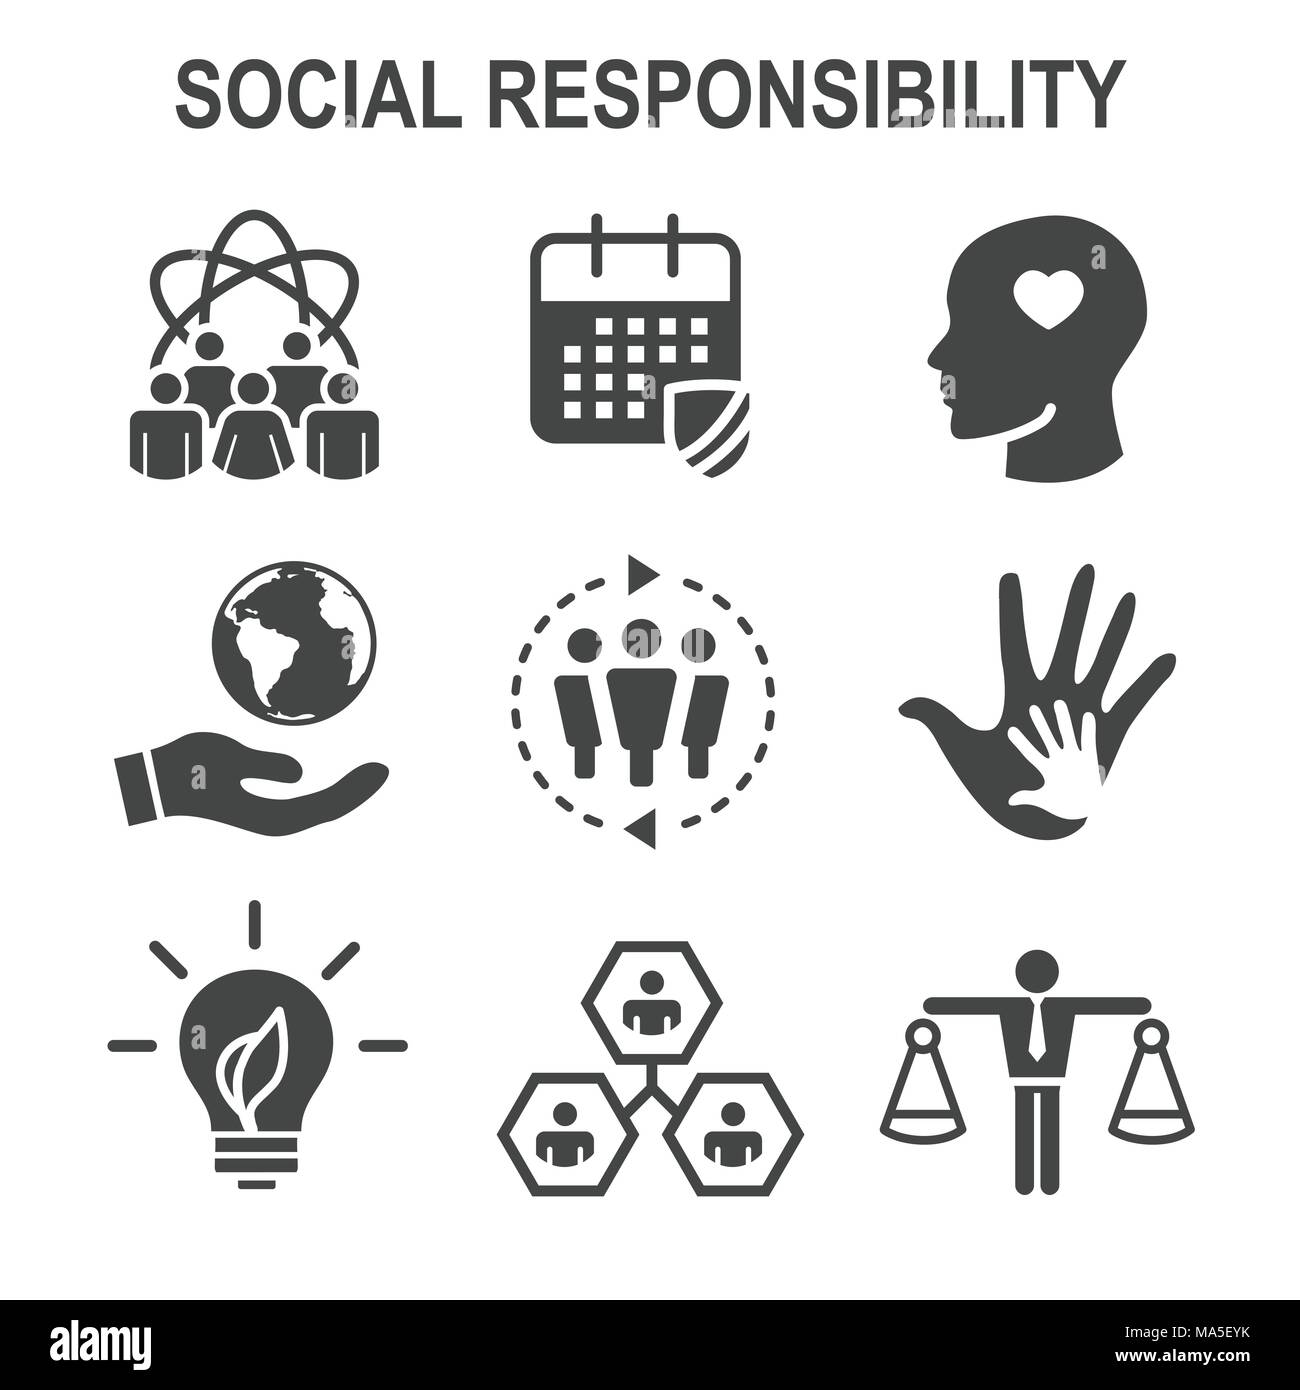 Integrity cut out stock images pictures alamy social responsibility solid icon set with honesty integrity collaboration etc stock image biocorpaavc Image collections